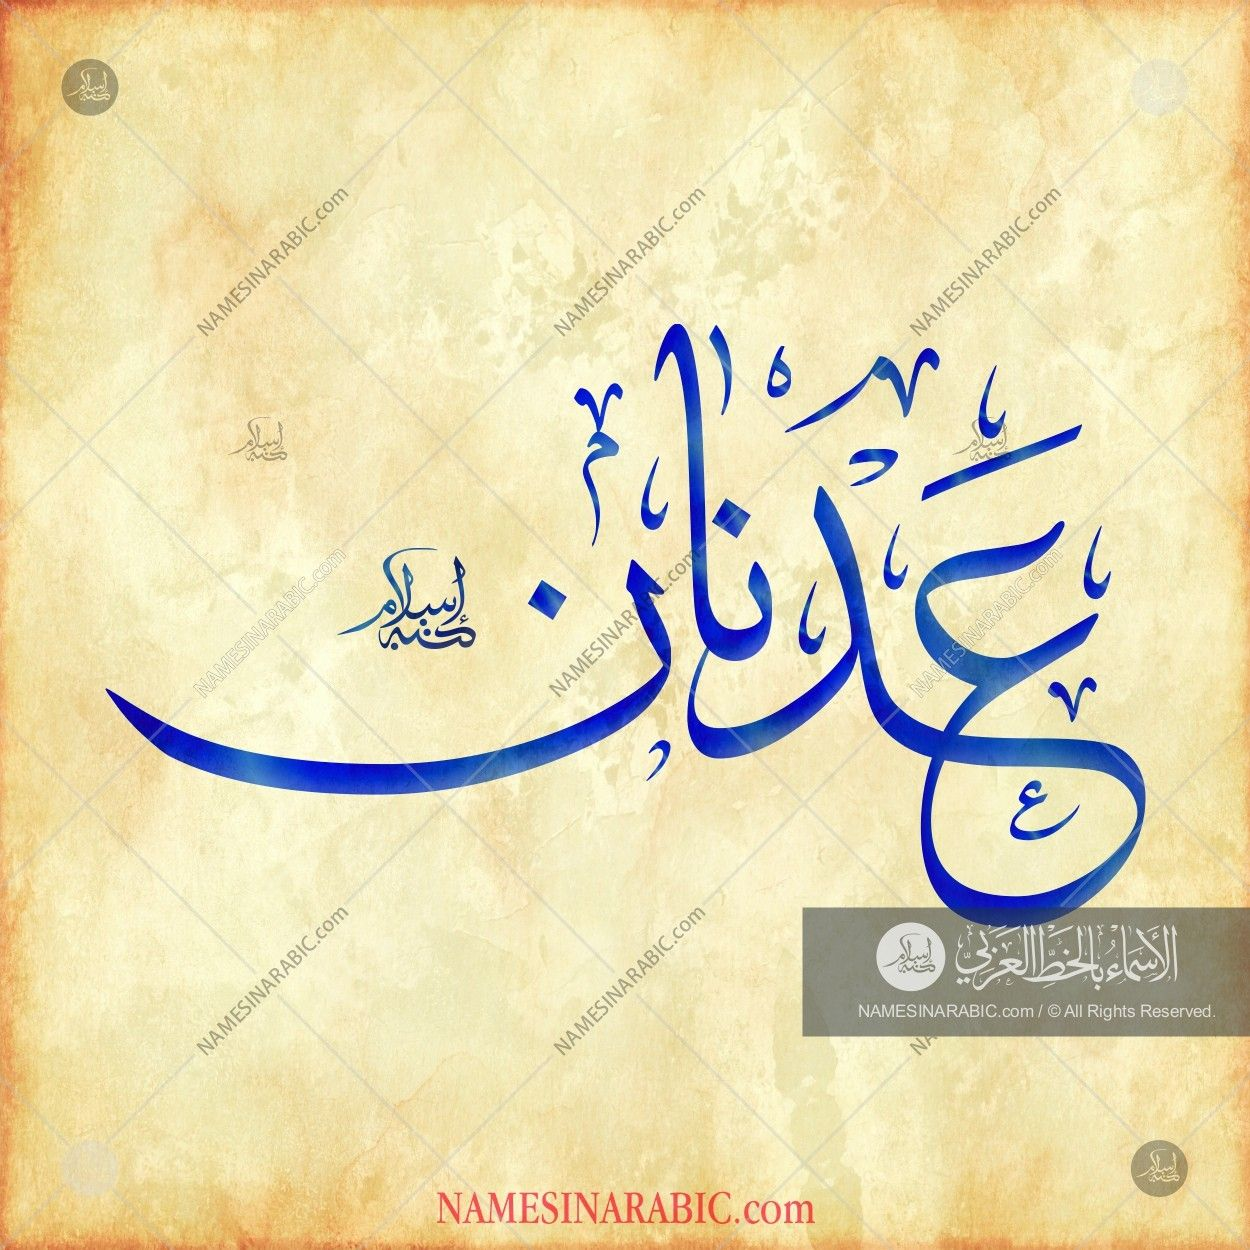 Adnan Name In Arabic Calligraphy Islamic Calligraphy Painting Calligraphy Name Calligraphy